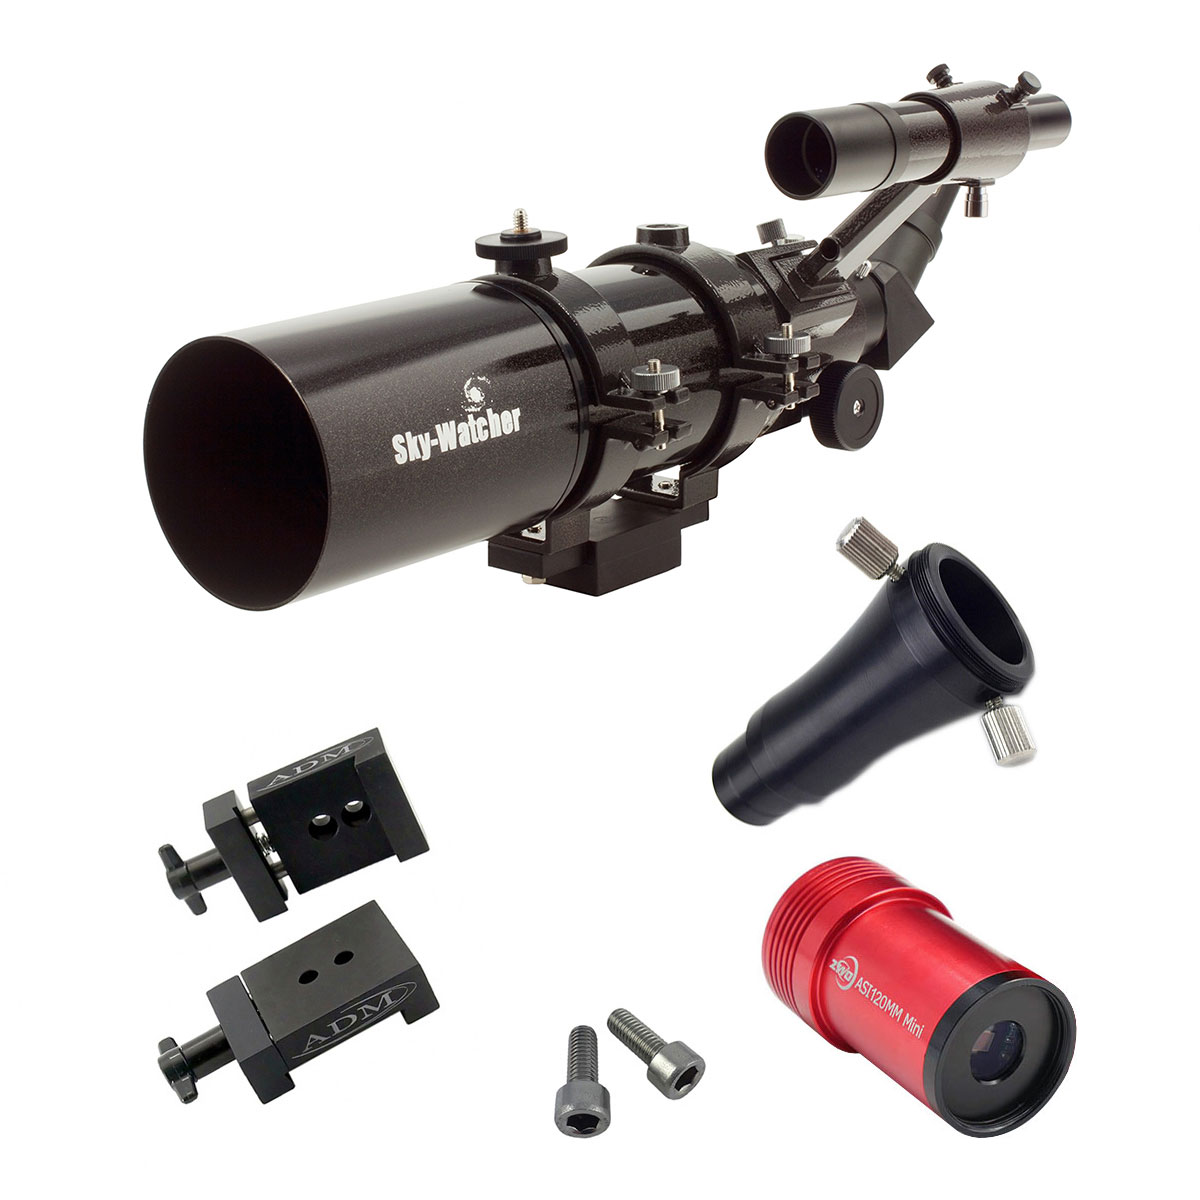 Guide Scope Bundle - Suitable for Piggy Backing